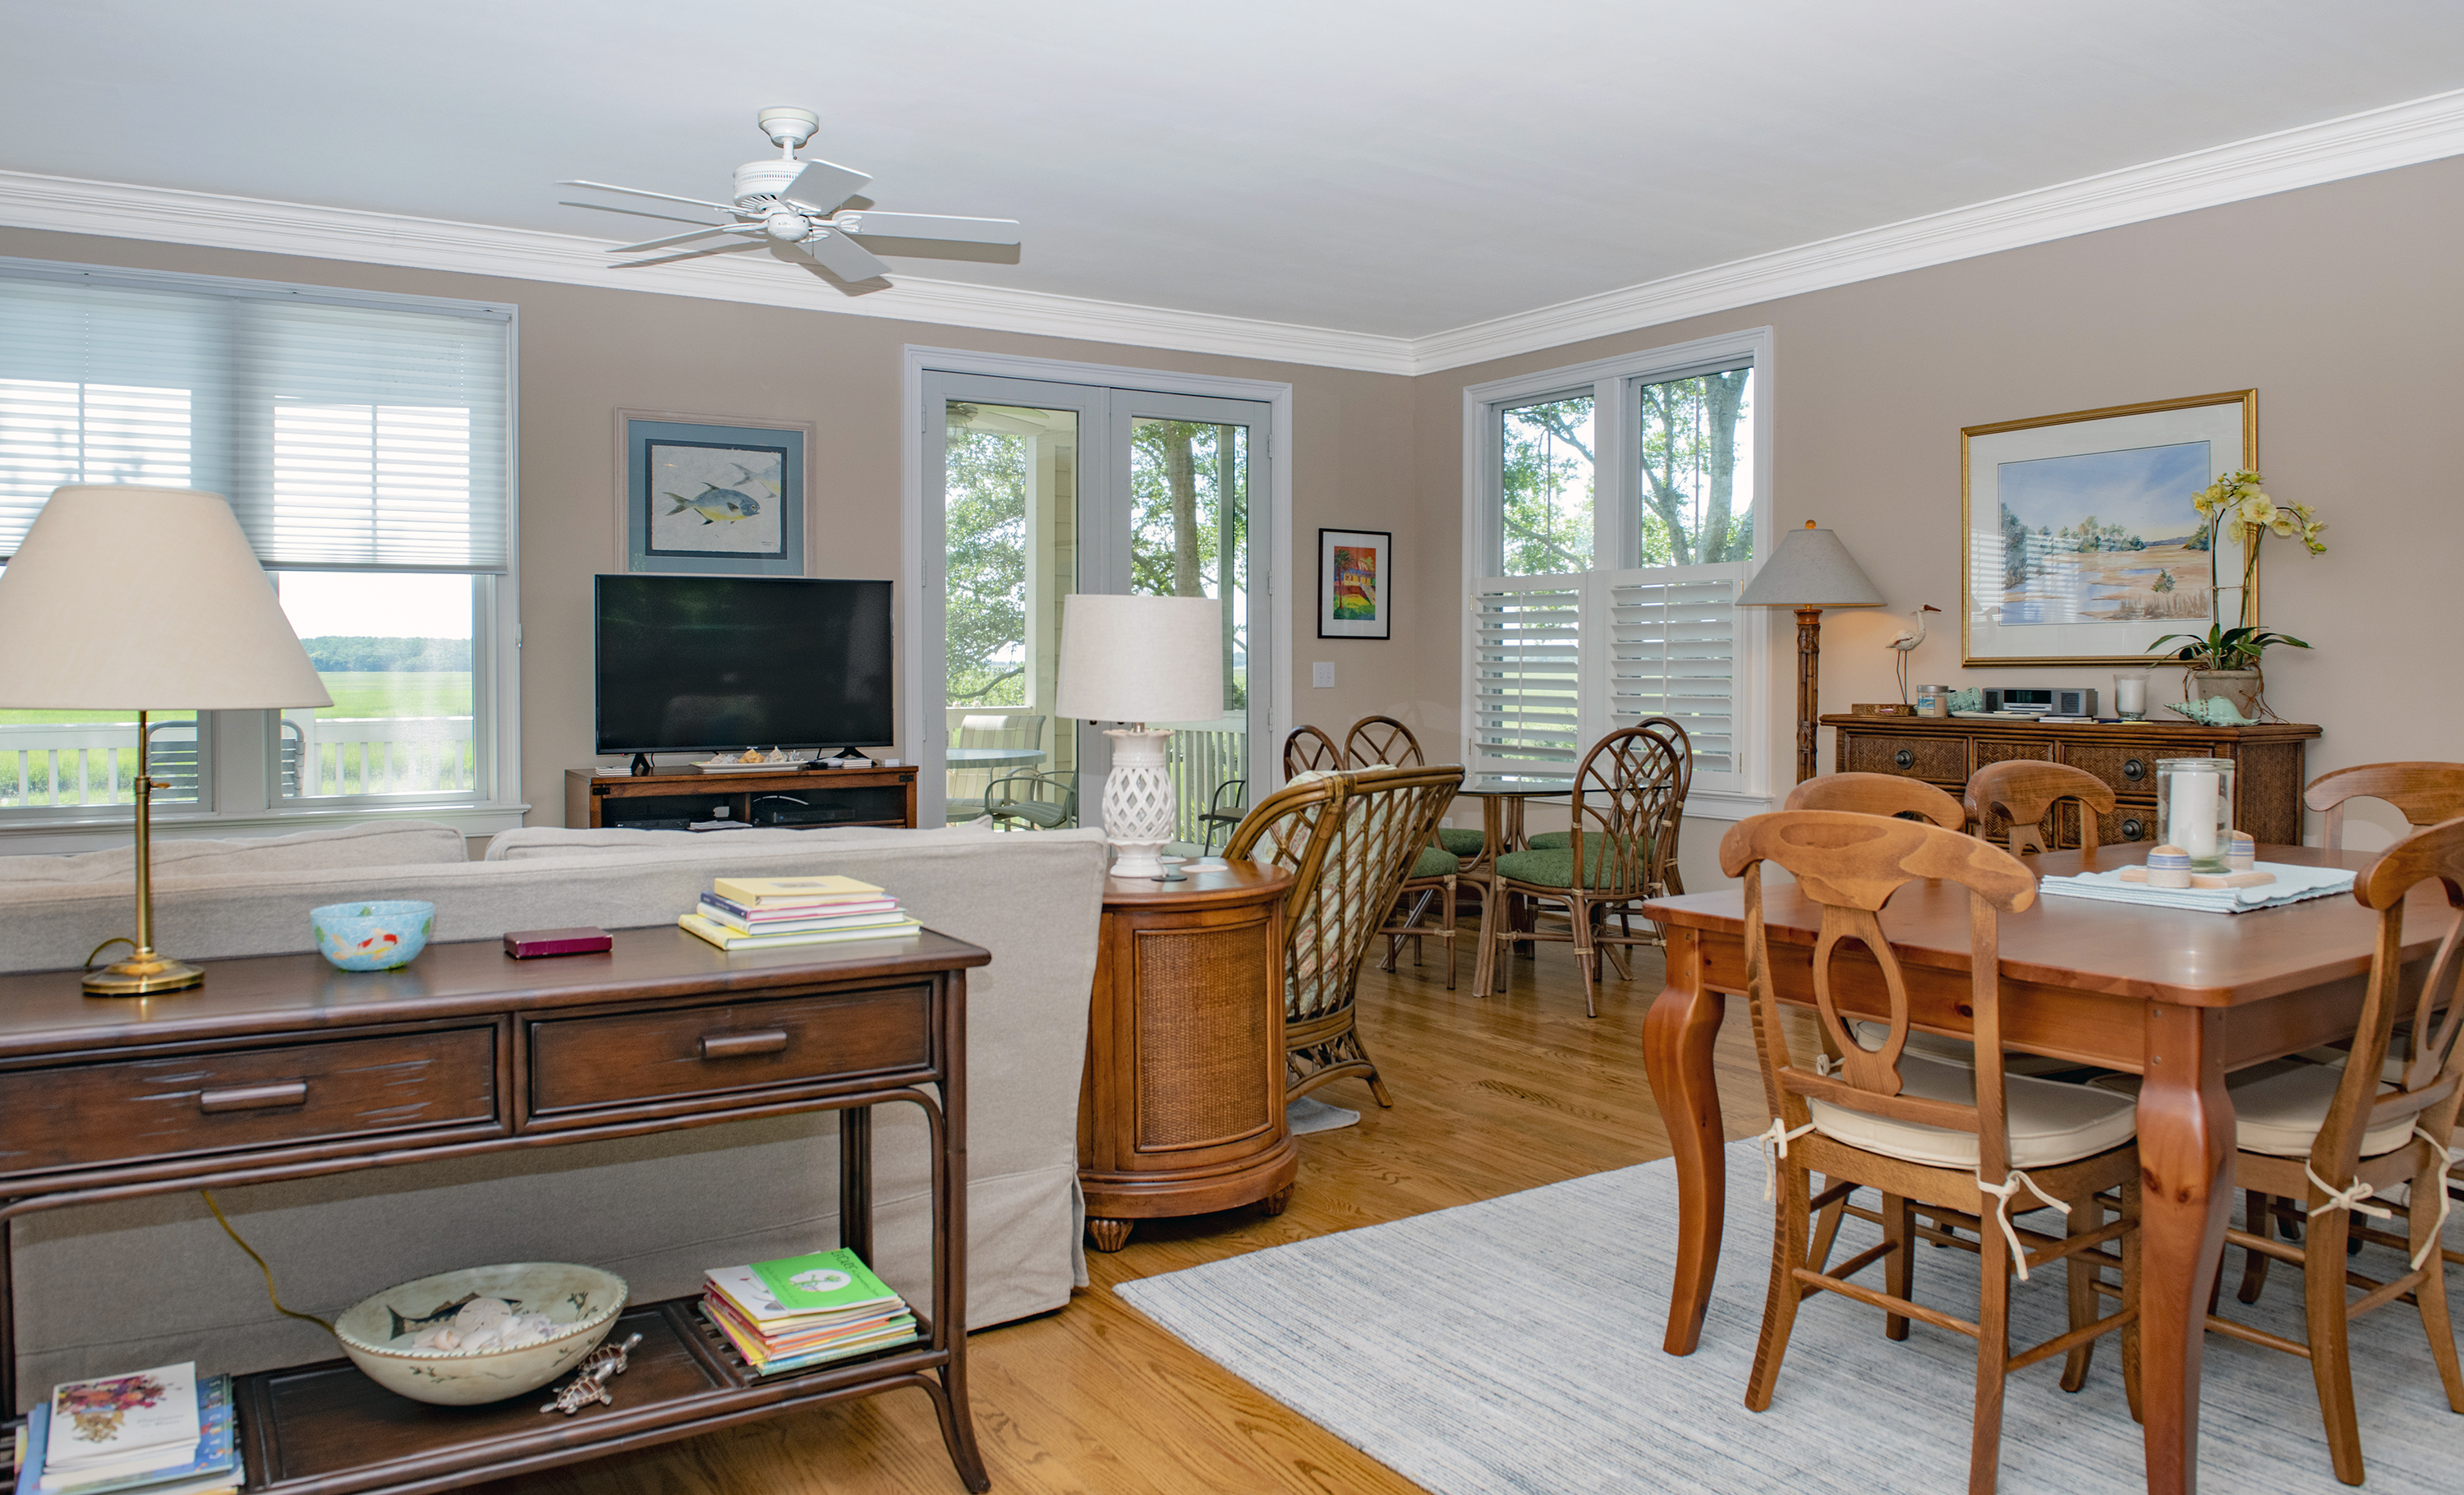 The dining area is open to the great room and kitchen.